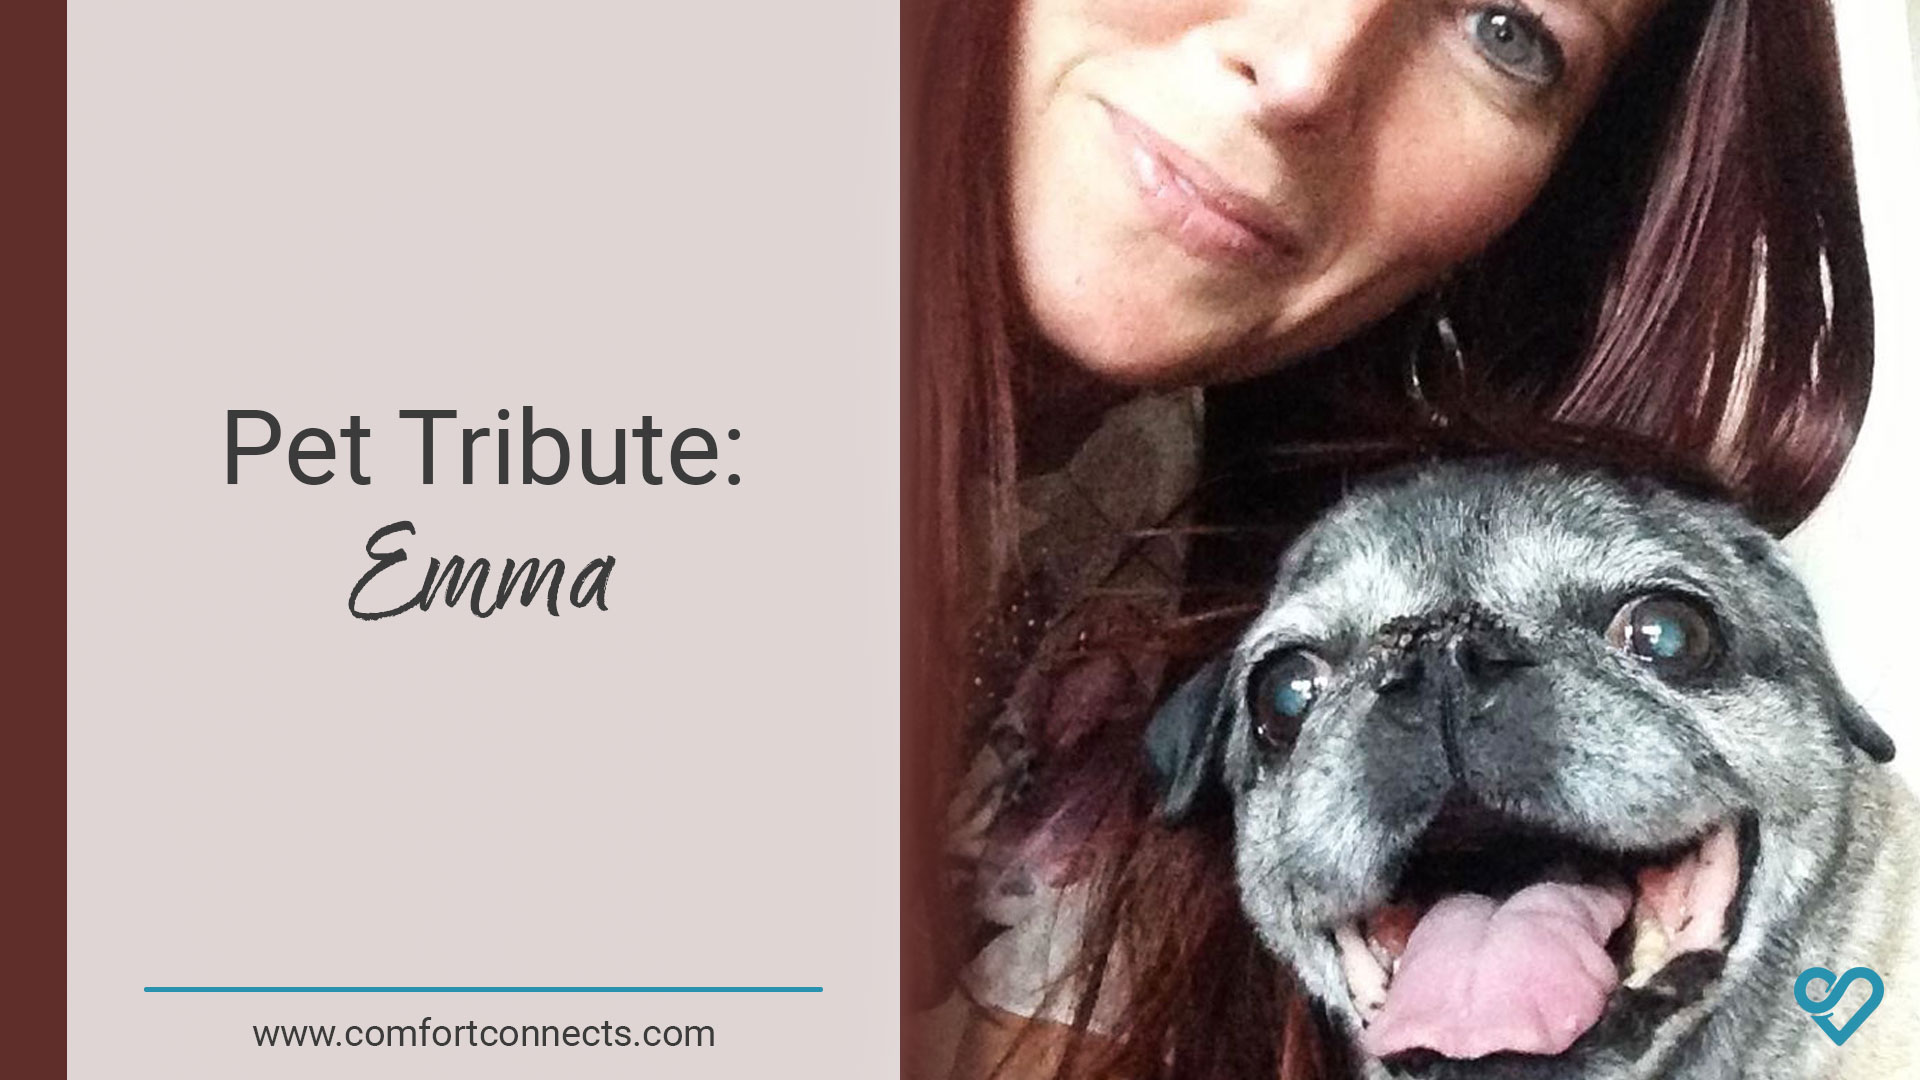 Pet Tribute: Emma